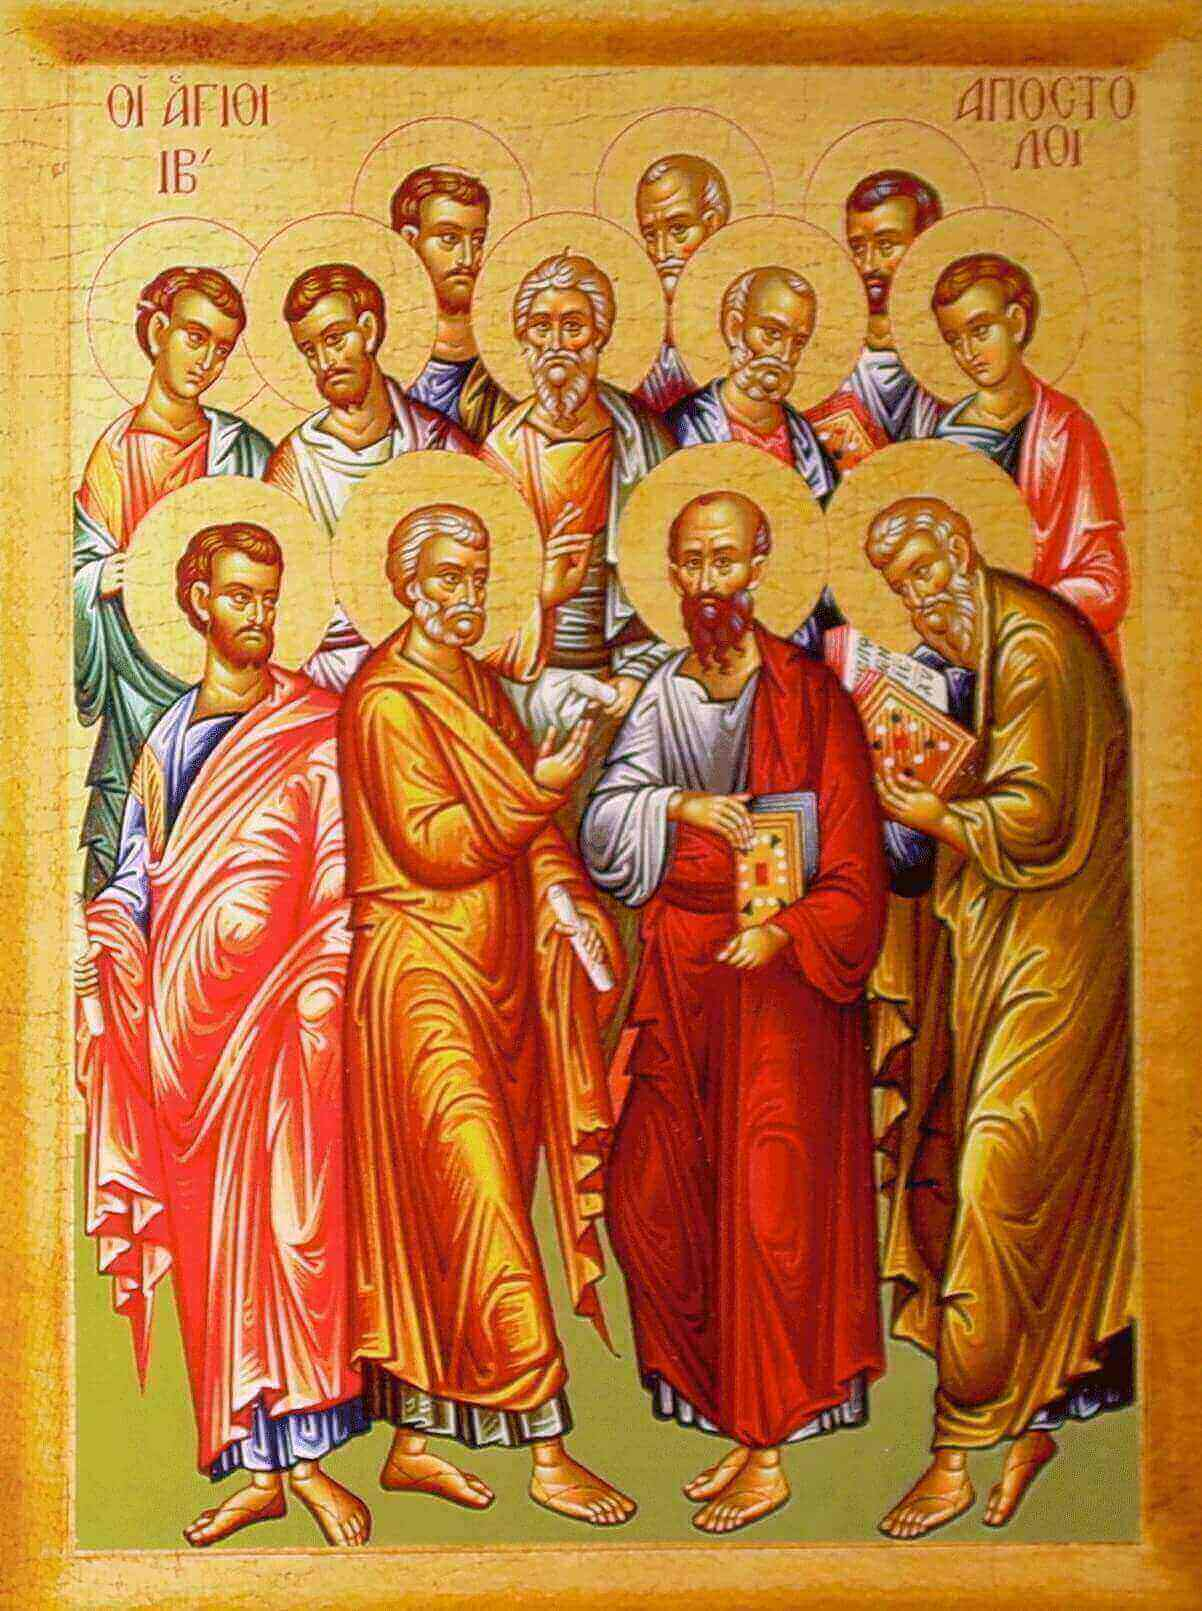 How many apostles are there in the New Testament?